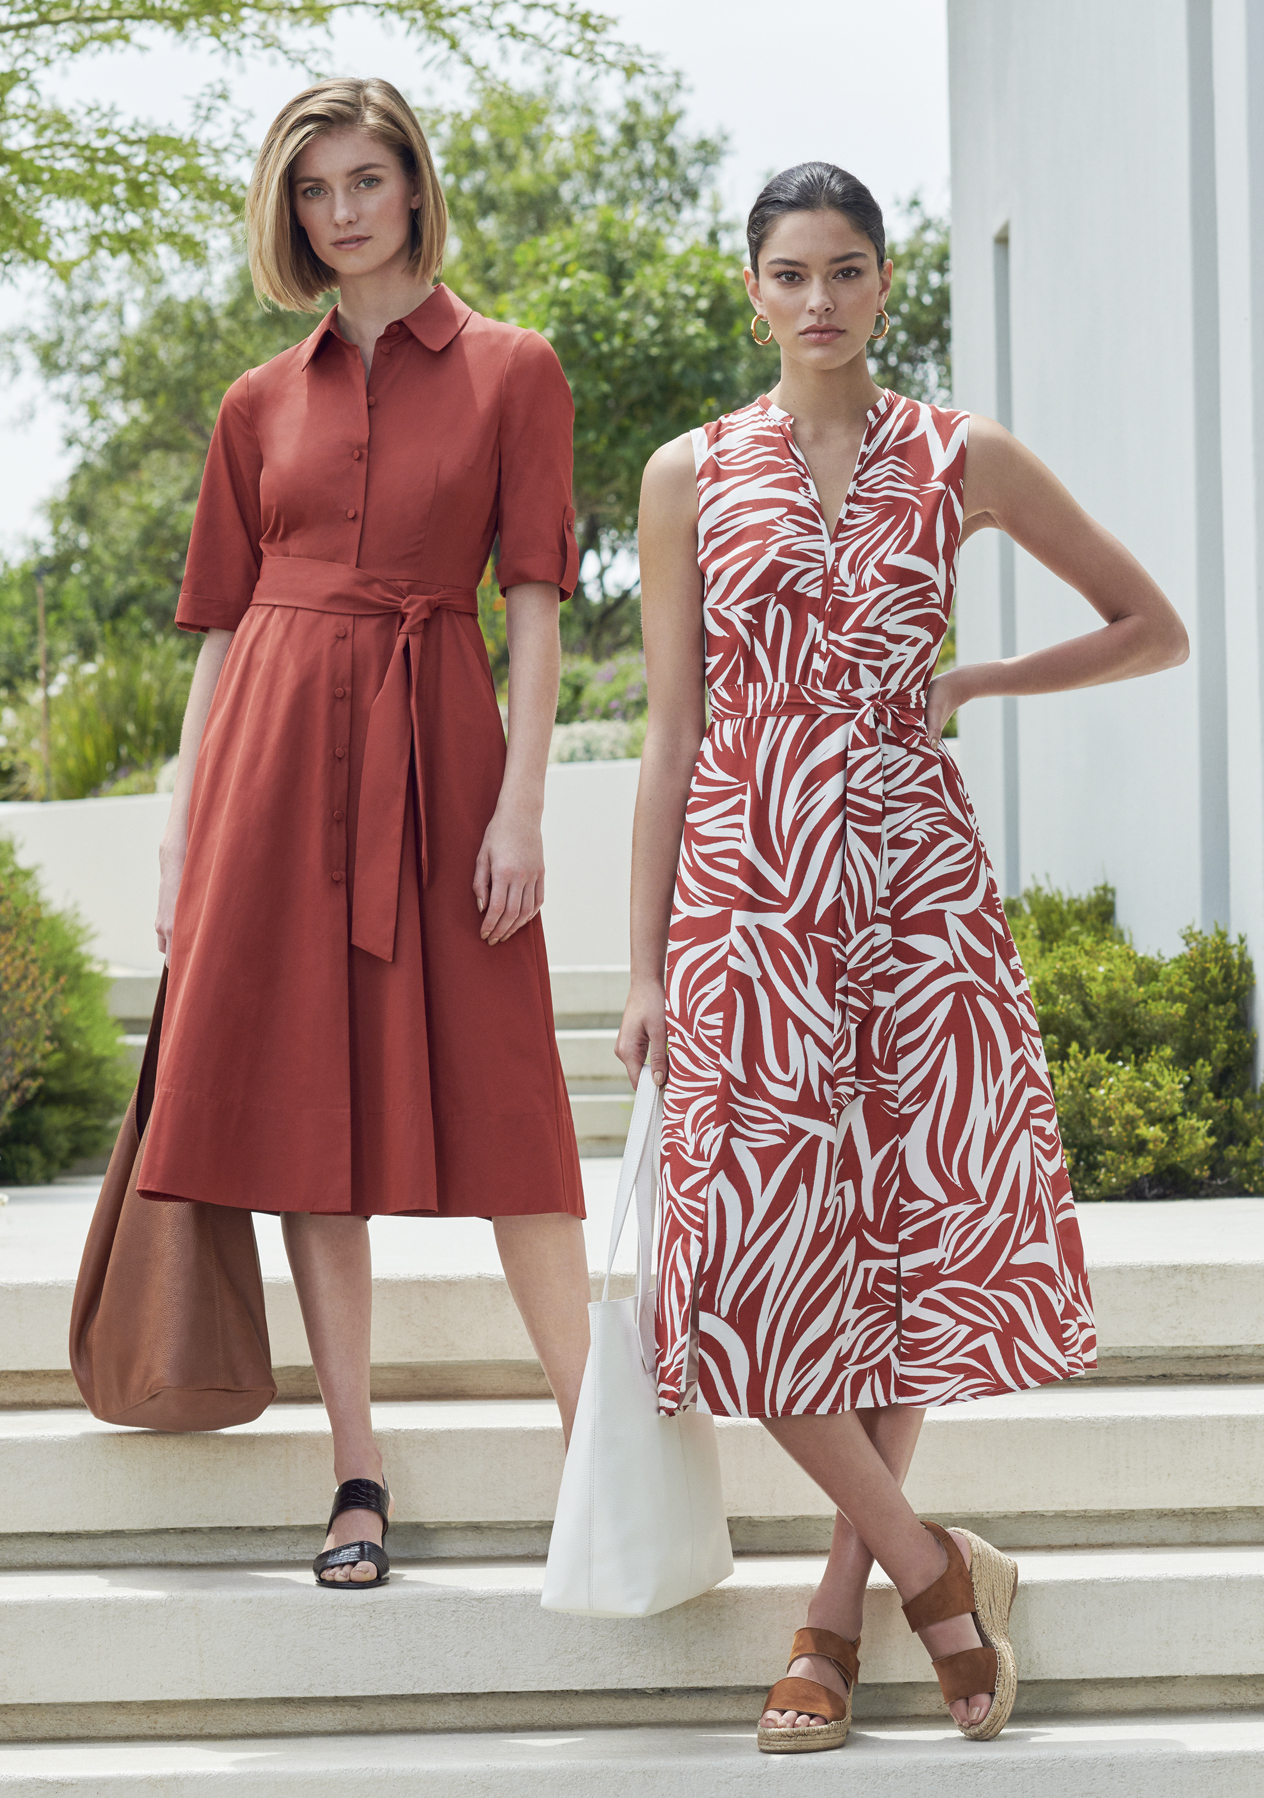 The left outfit shows a midi-length shirt dress in rust orange paired with a brown women's bag and black sandals. The right outfit shows a sleeveless midi dress in a zebra print in red and white with a waist-tie detail paired with a white tote bag and brown espadrille wedges, all from Hobbs.